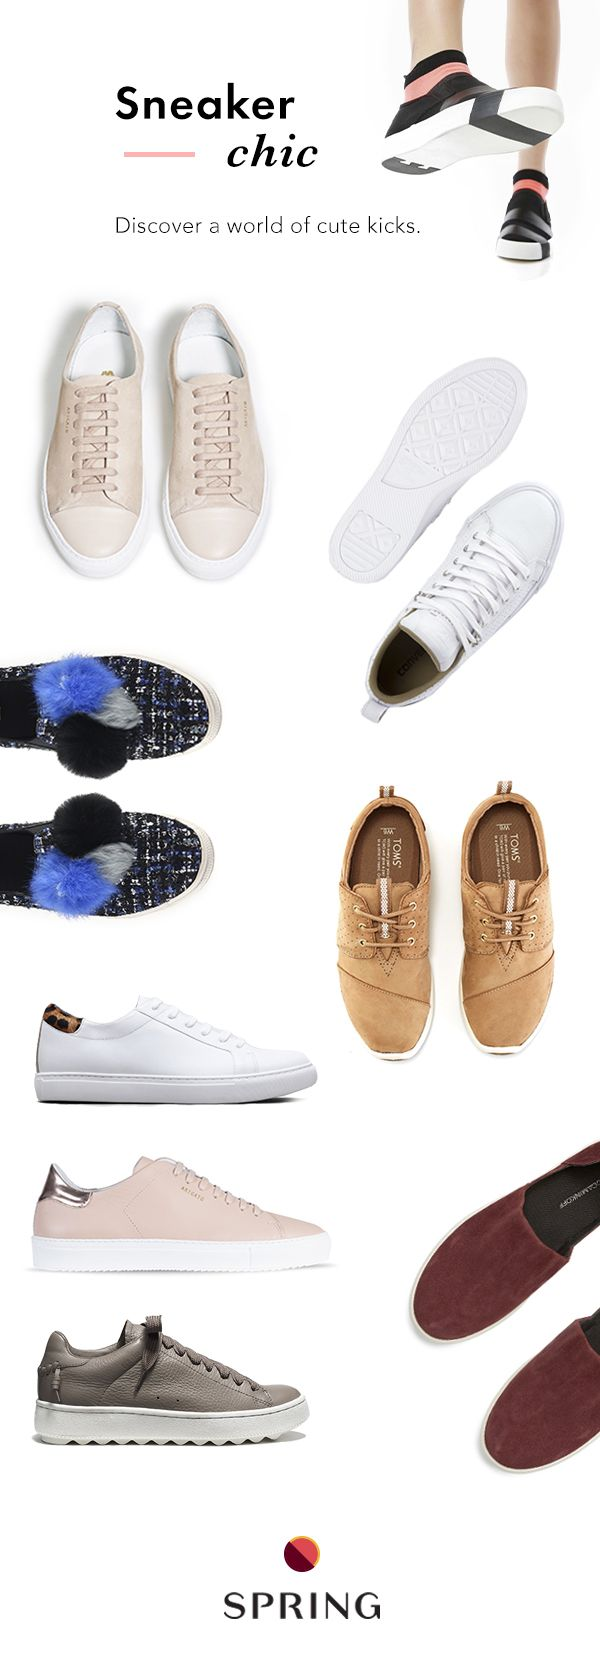 Spring has a premium selection of women's sneakers in all shapes and styles. With over 1,250 brands, you can always find the perfect new pair. Plus free shipping + free returns.